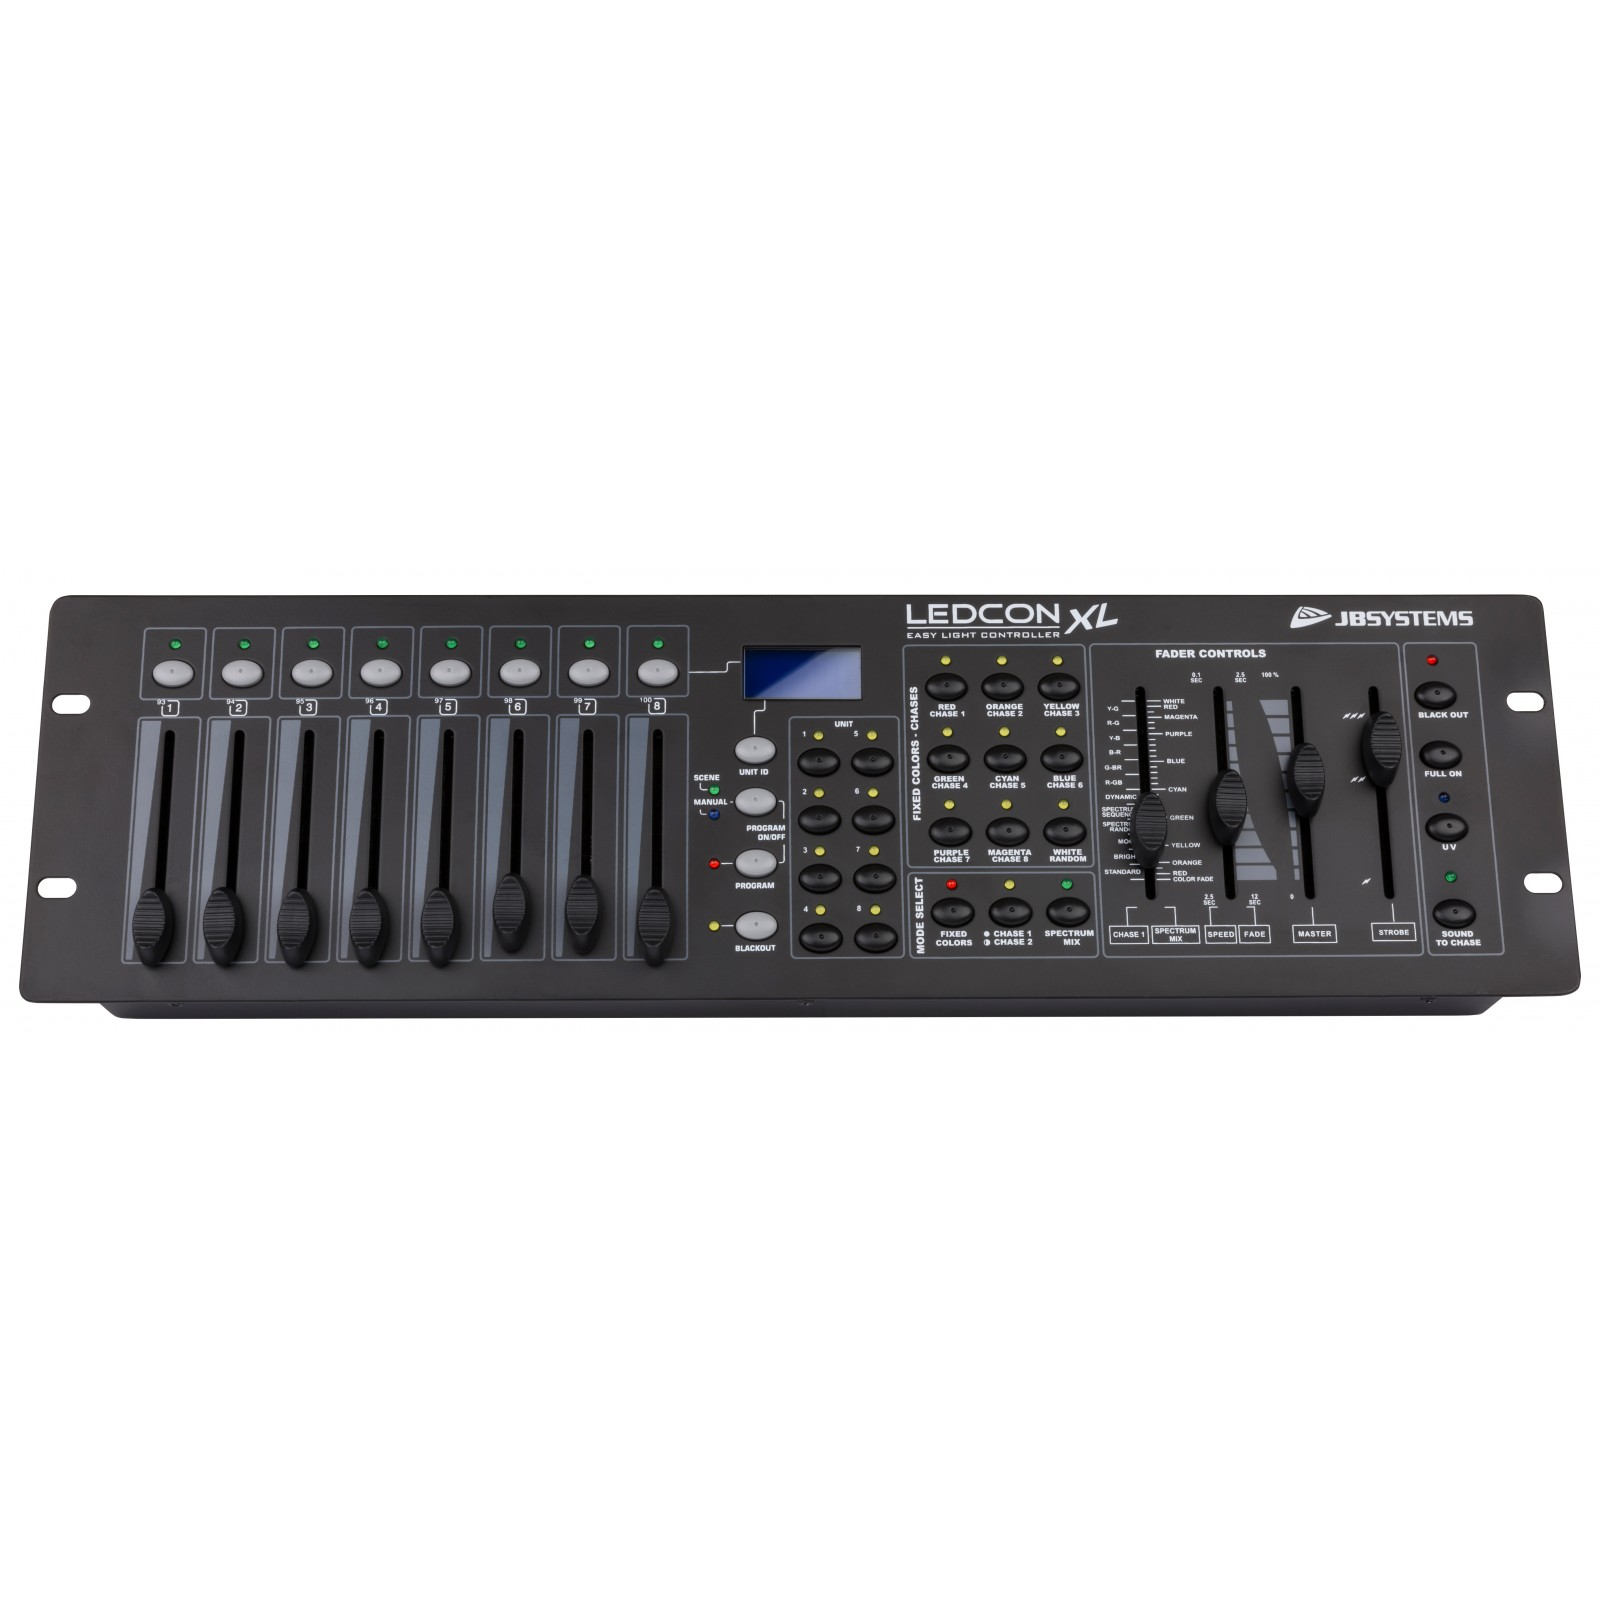 Can Case Xl Manual With An External Amplifier You Need To Supply A Speakers Sp2003 Array Jb Systems Ledcon Light Controllers Rh Eu